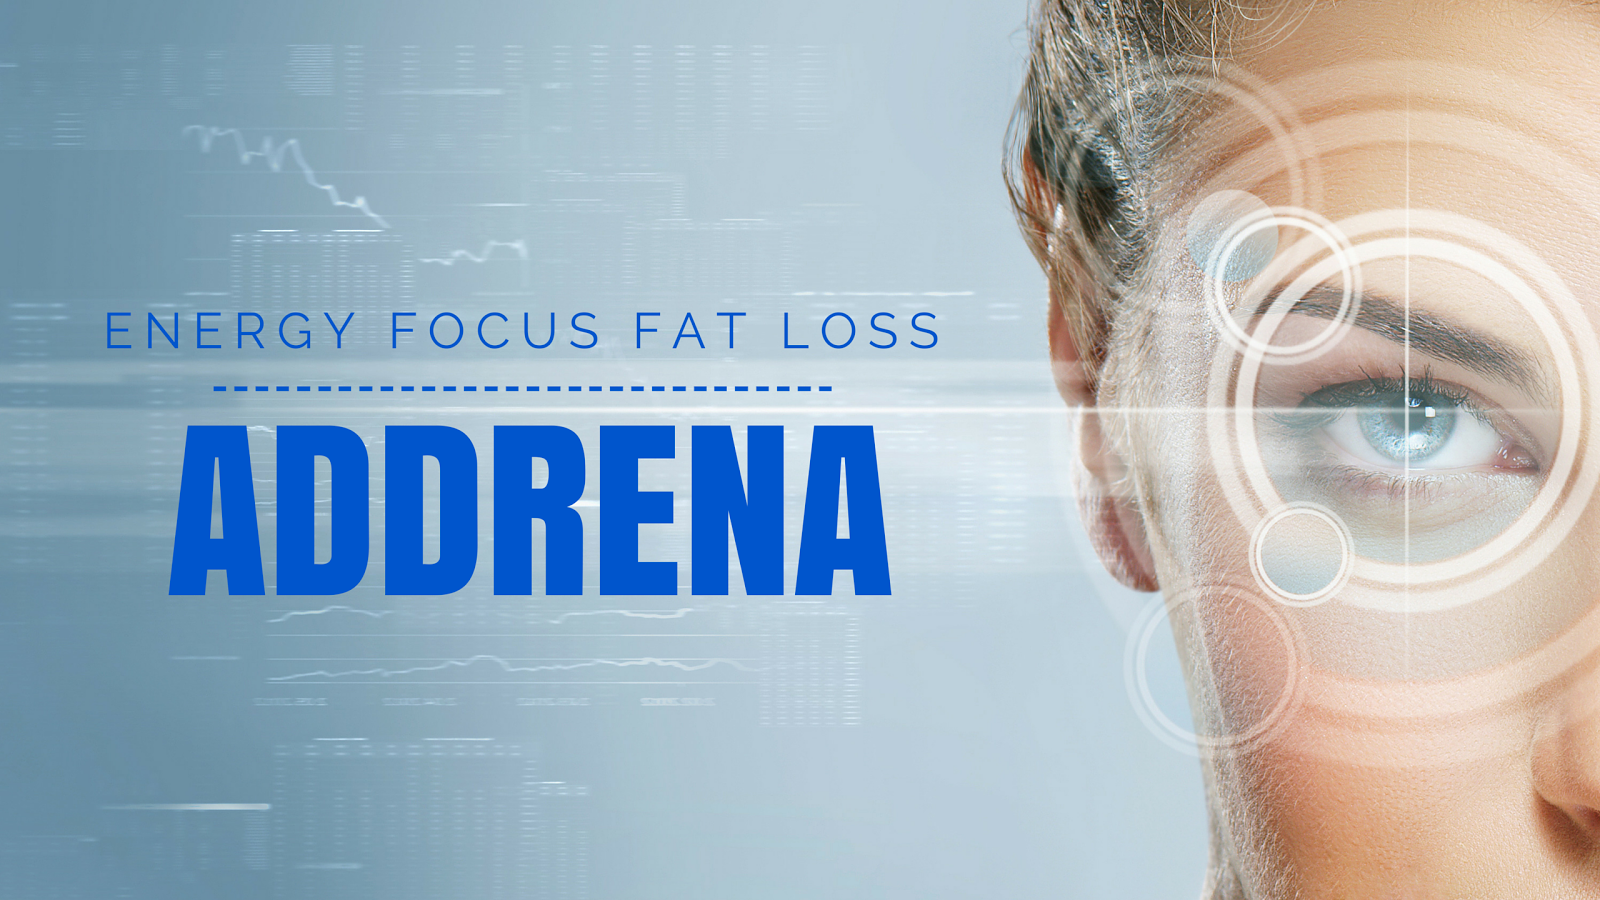 Addrena Review: Where to buy, vs Adderall, side effects, and Ingredients